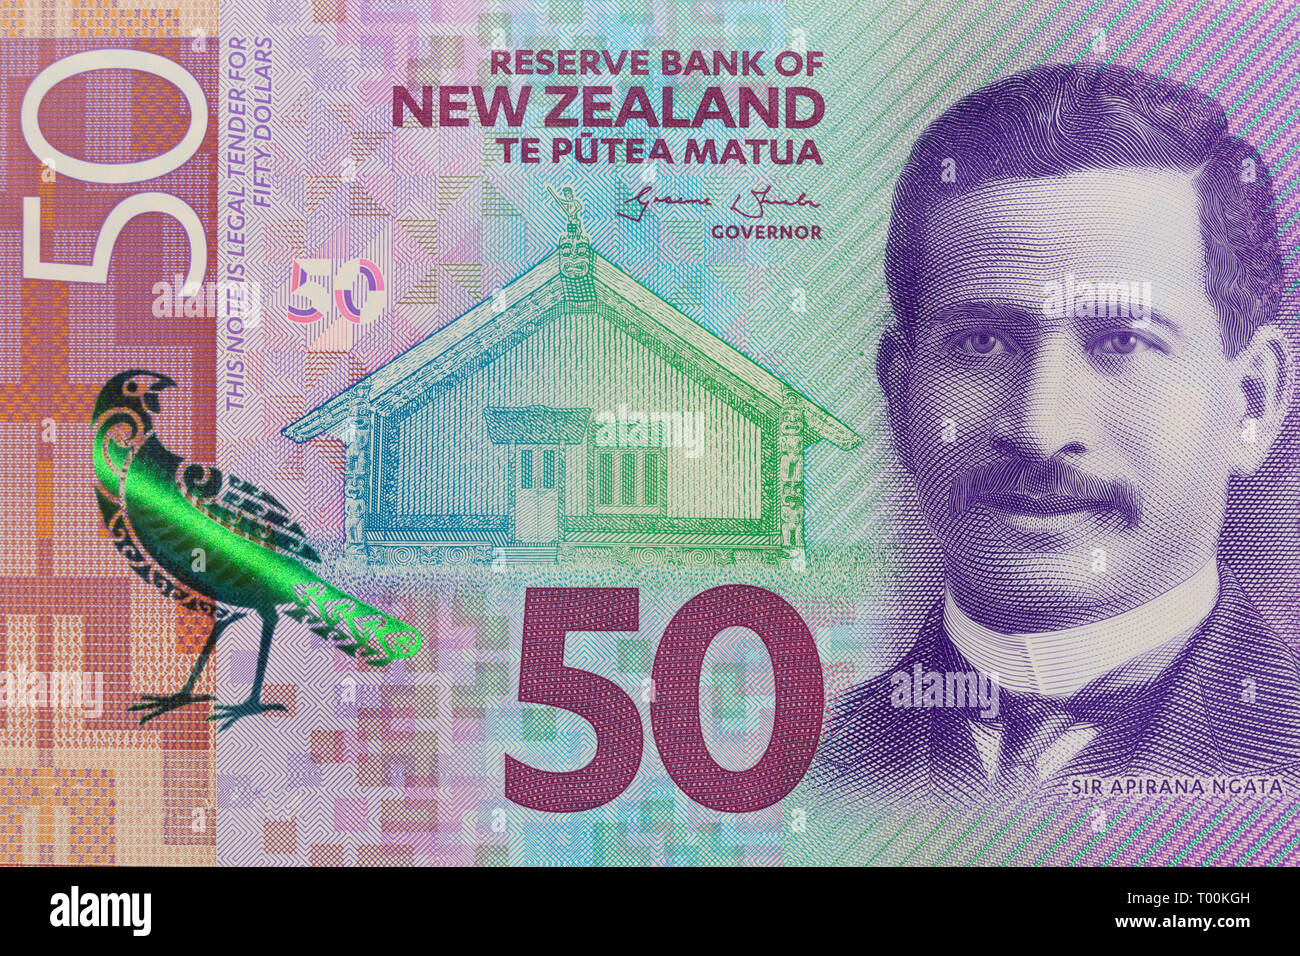 New Zealand 50 dollar paper currency note, Auckland, New Zealand - Stock Image